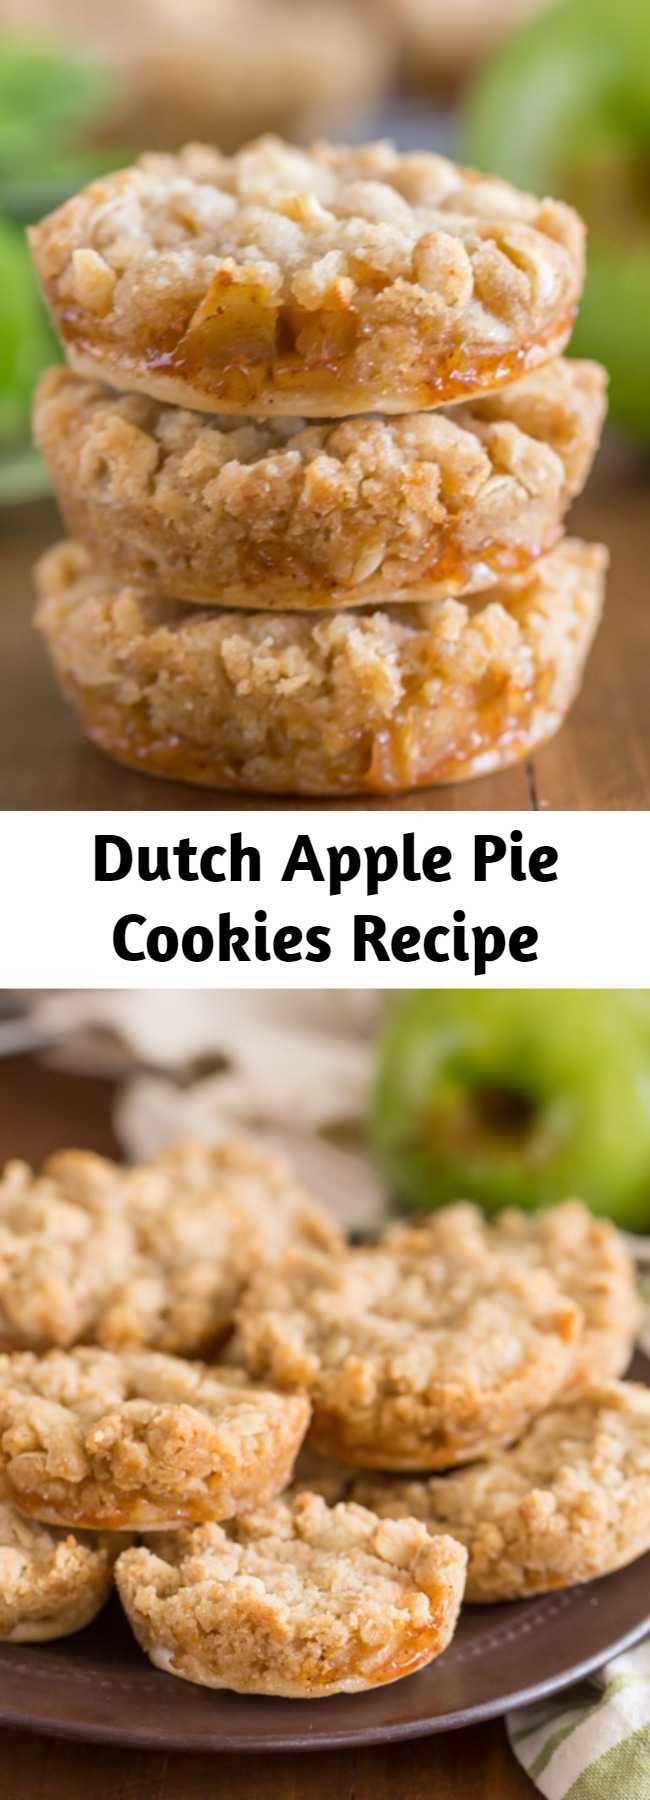 Dutch Apple Pie Cookies Recipe - These are the perfect little three bite apple pie -slash- cookie.  They have a circle of pie crust on the bottom, then a layer of finely diced cinnamon apple filling, with the most delicious, sweet, buttery crumb topping.